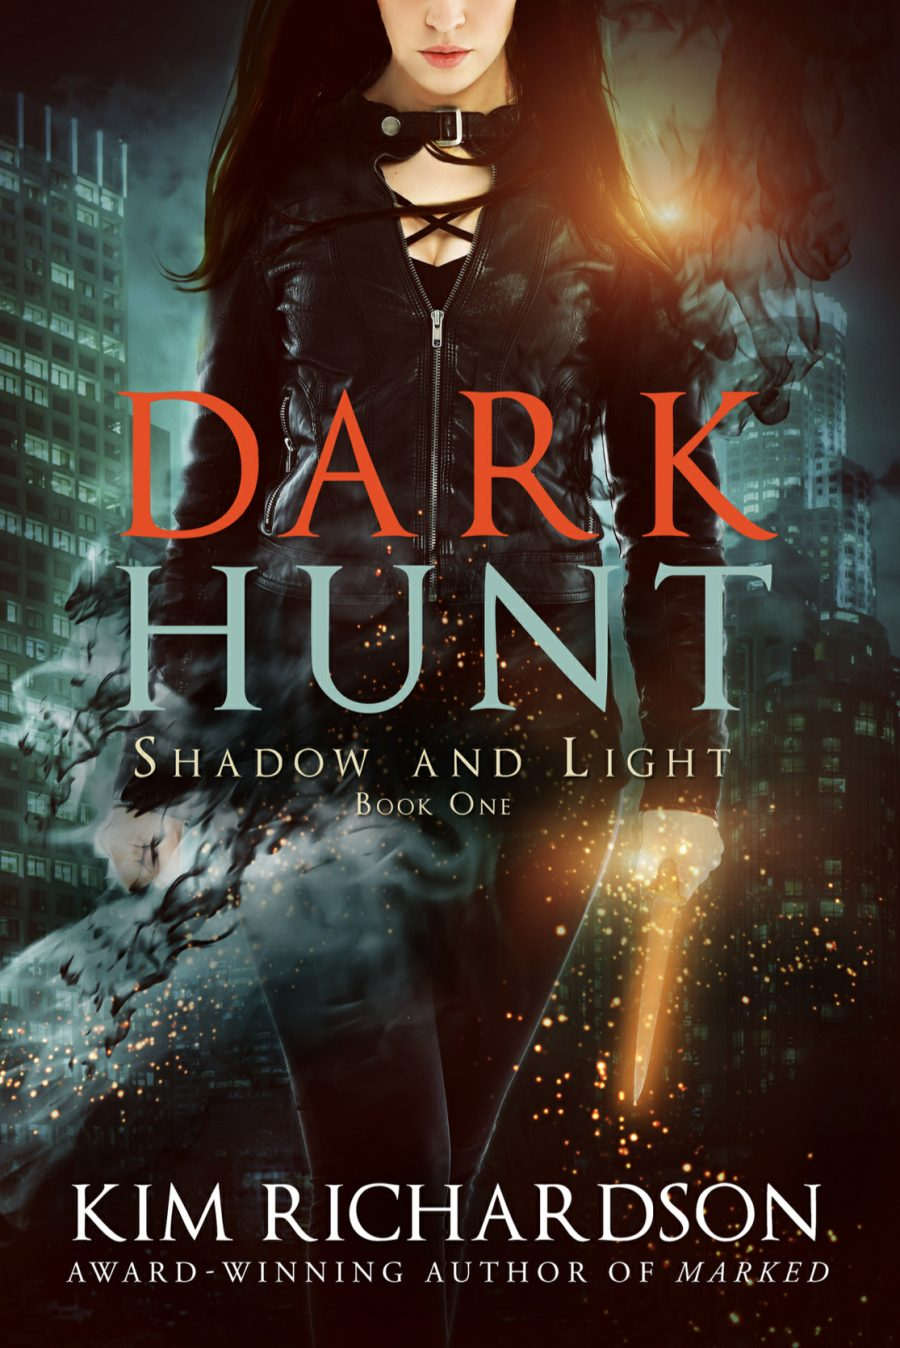 Dark Hunt (Shadows and Light - Book 1) by Kim Richardson - A Book Review #BookReview #UrbanFantasy #SeriesComplete #KindleUnlimited #KU #4Stars